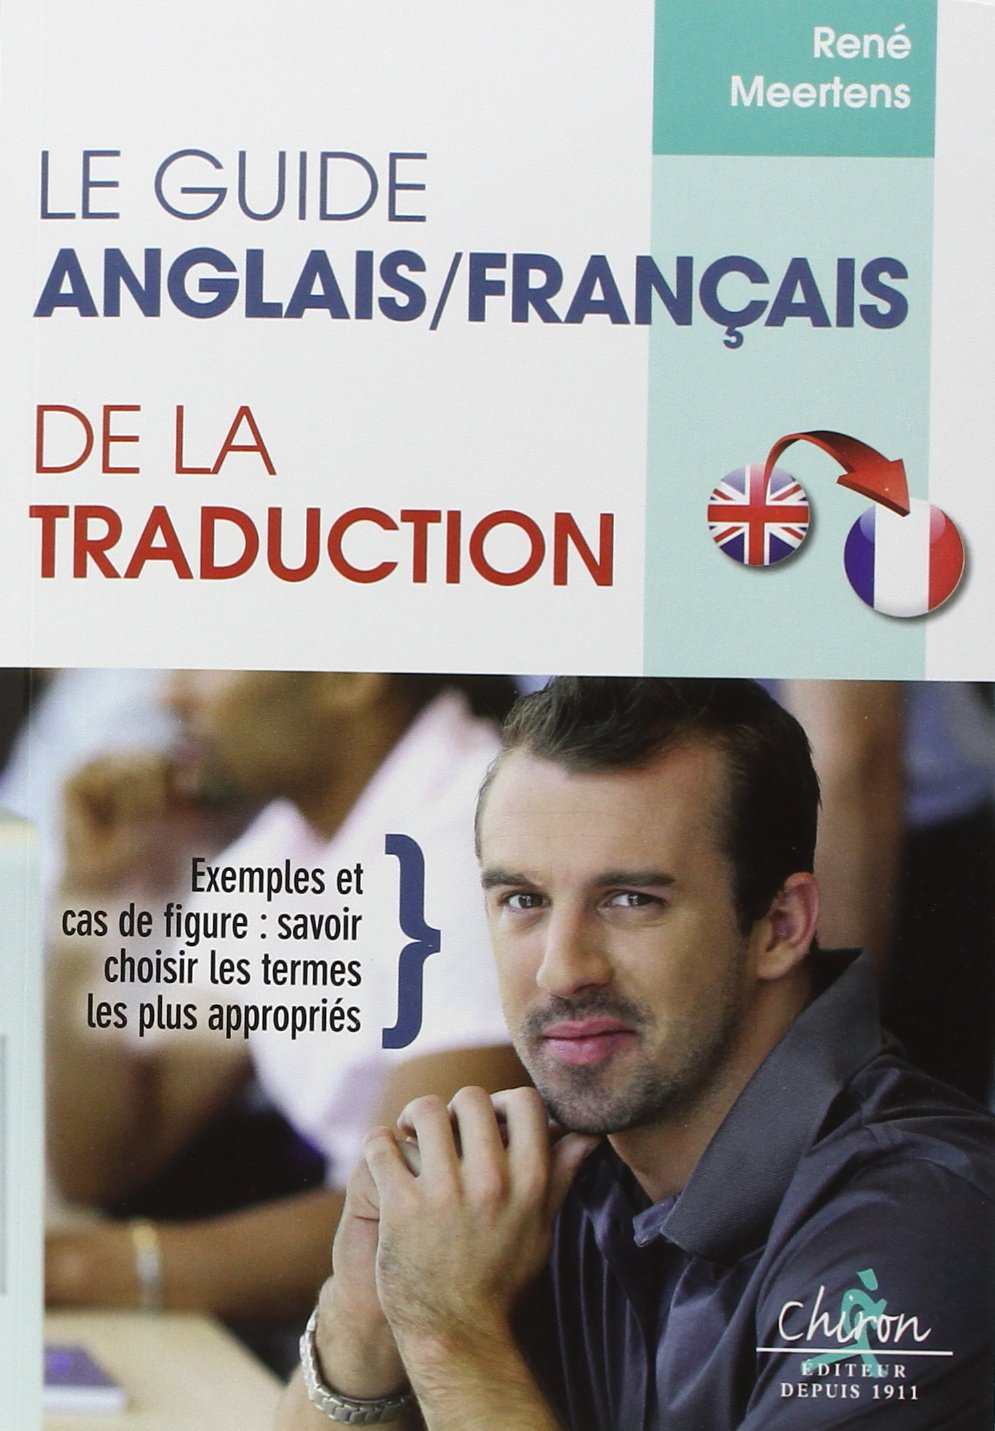 Le guide anglais-français de la traduction: Amazon co uk